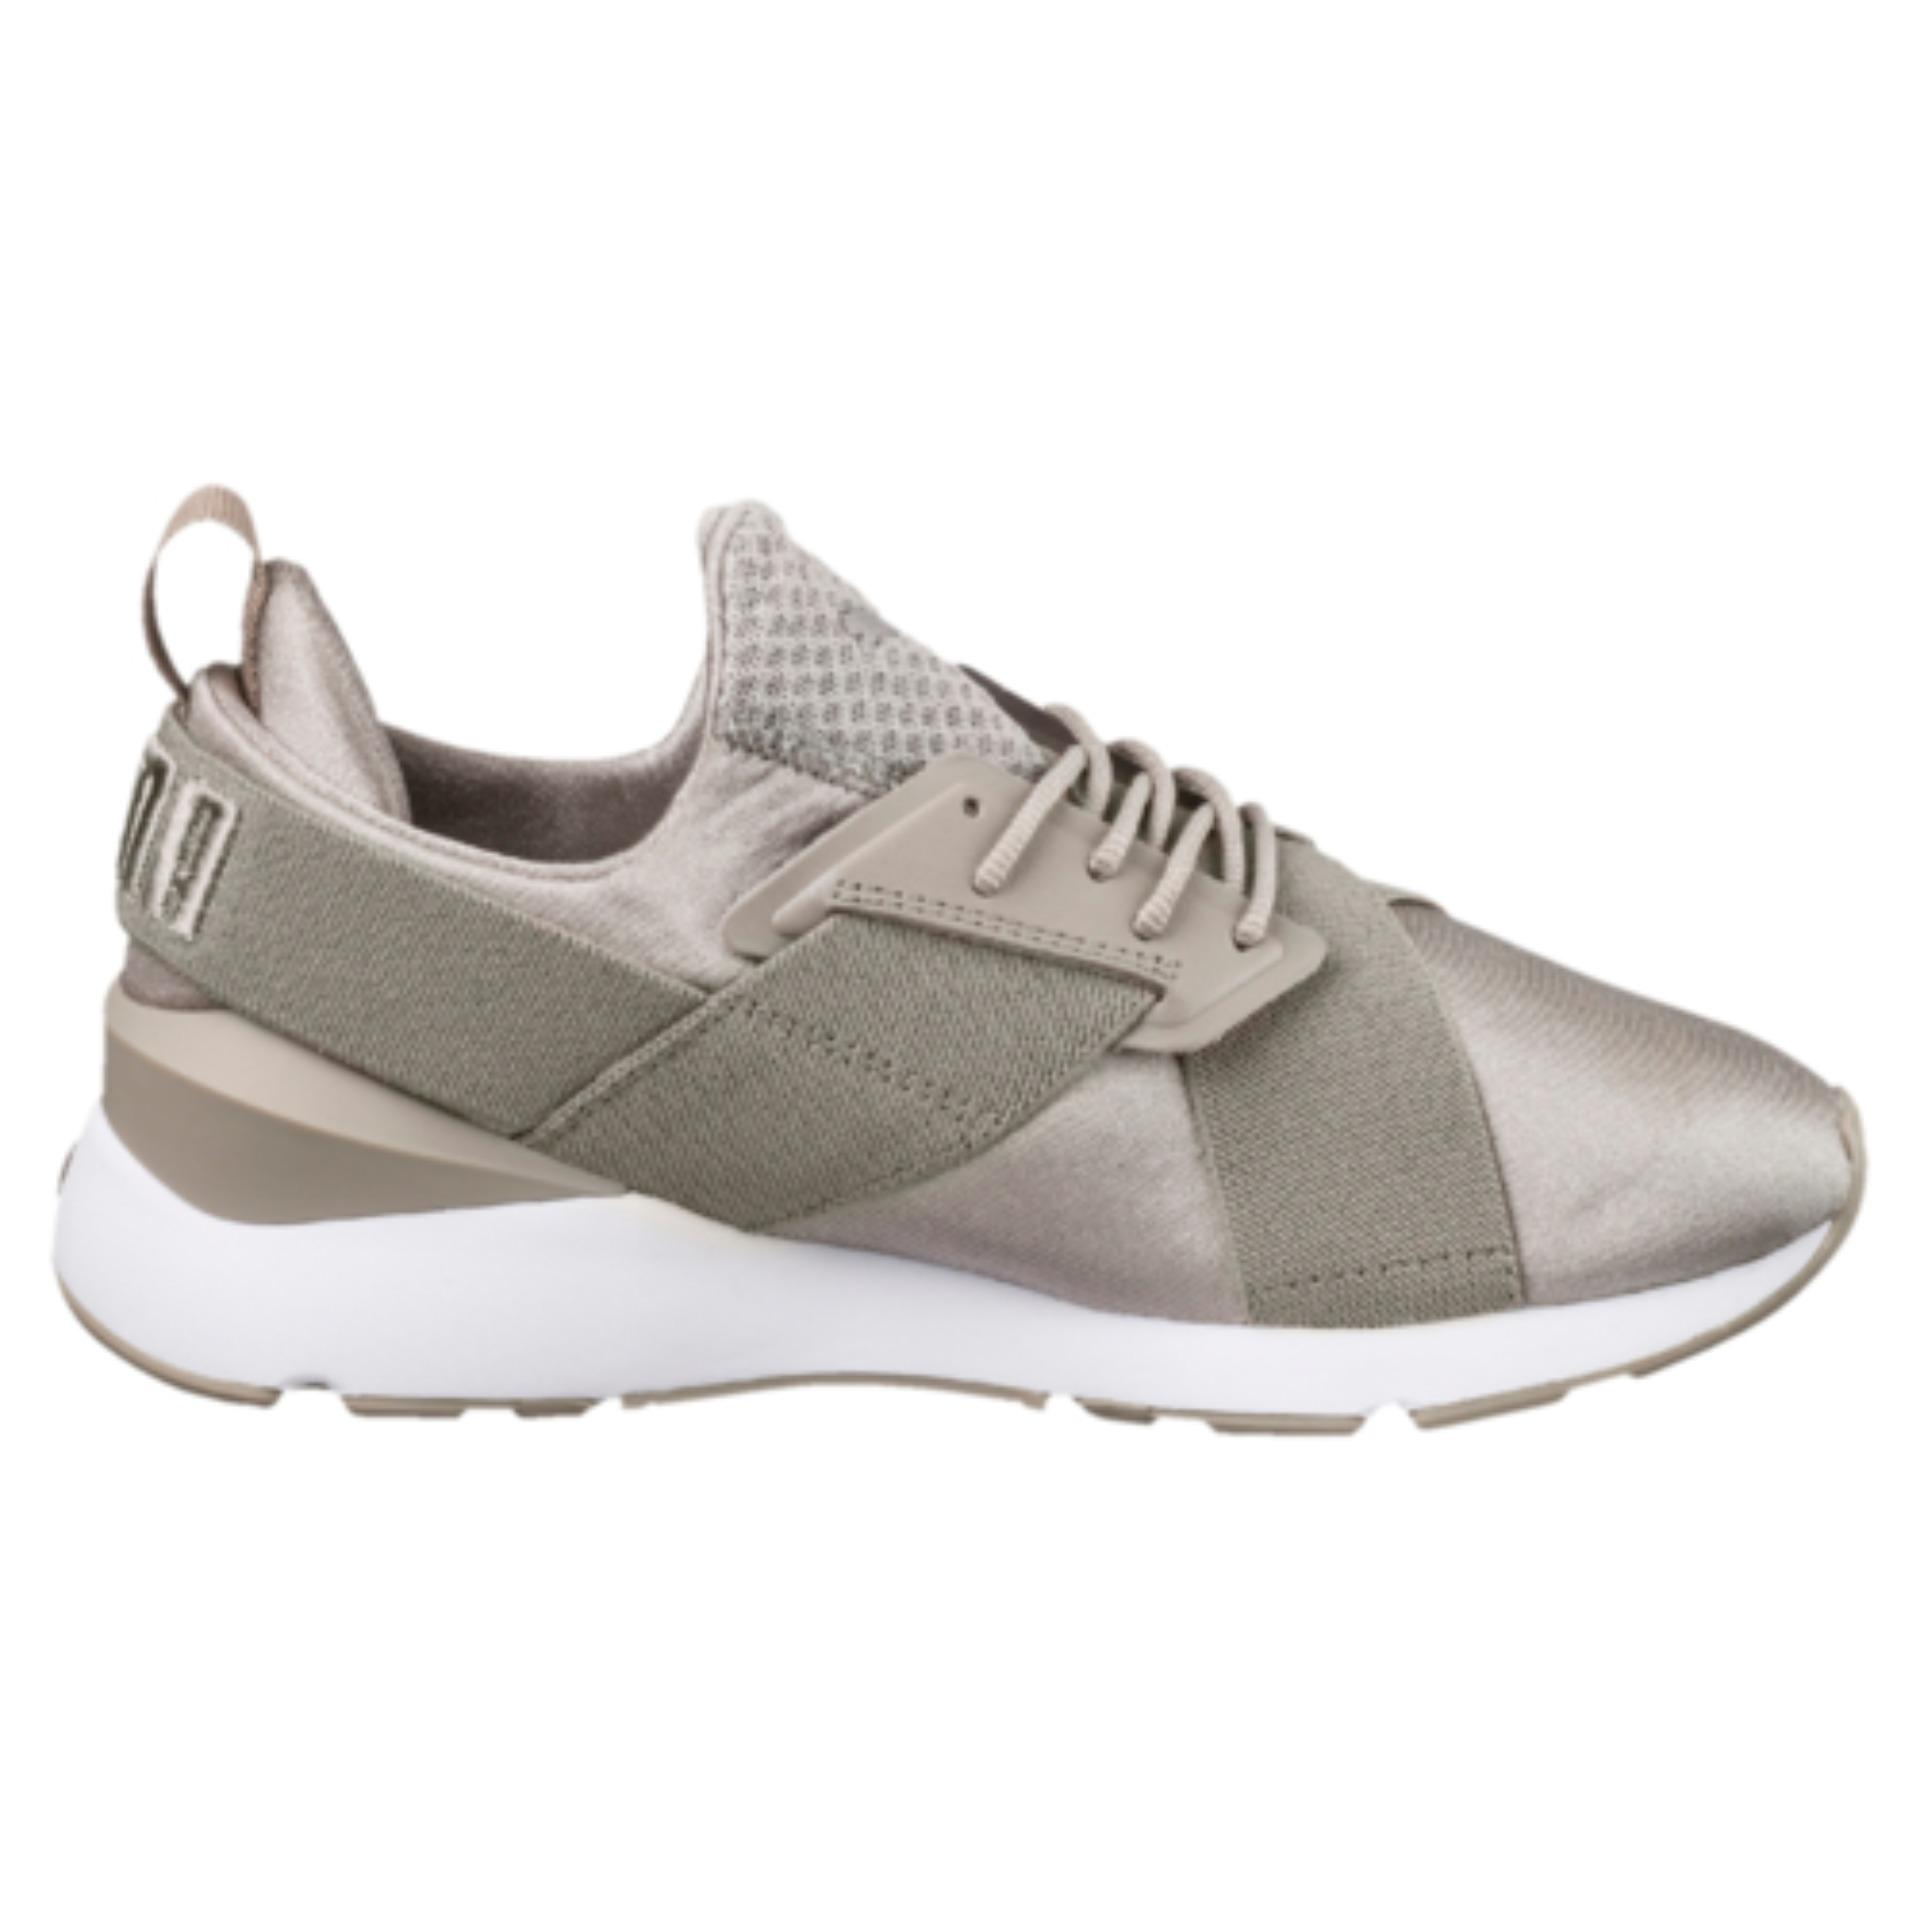 Review Puma Muse Satin Ep Women Sneakers Rock Ridge Puma Whiterock Ridge Puma White Puma On Singapore